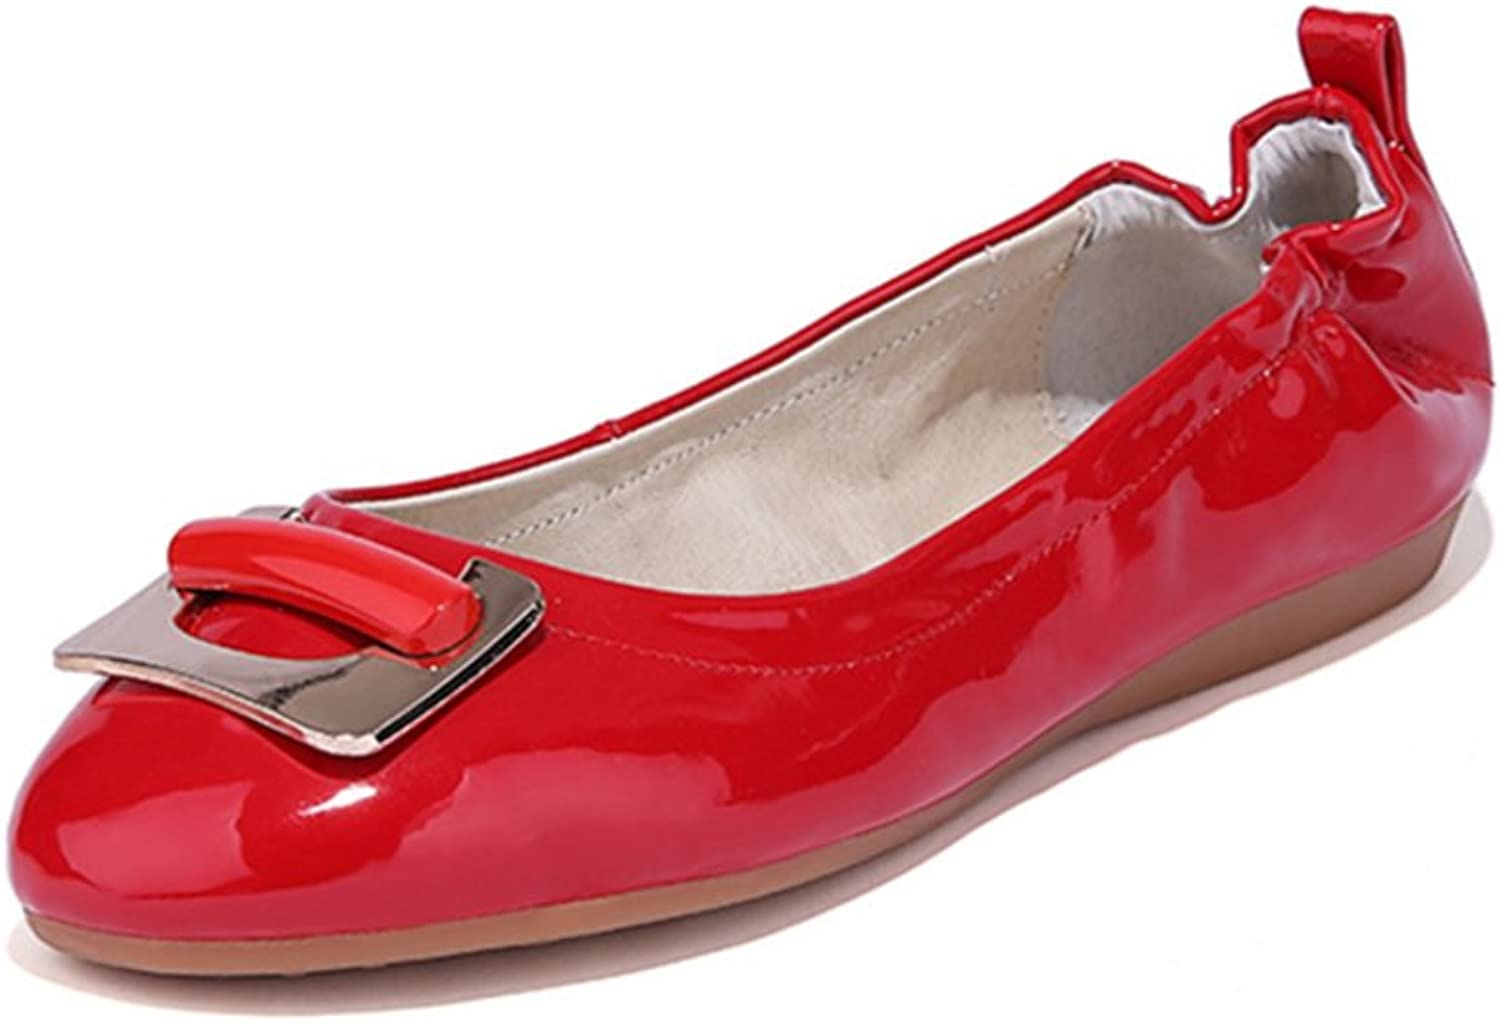 RHFDVGDS Soft Comfortable Folding Egg Rolls at The end of The shoes Summer Head Square Buckle shoes Shallow Flats shoes Pregnant Lady shoes